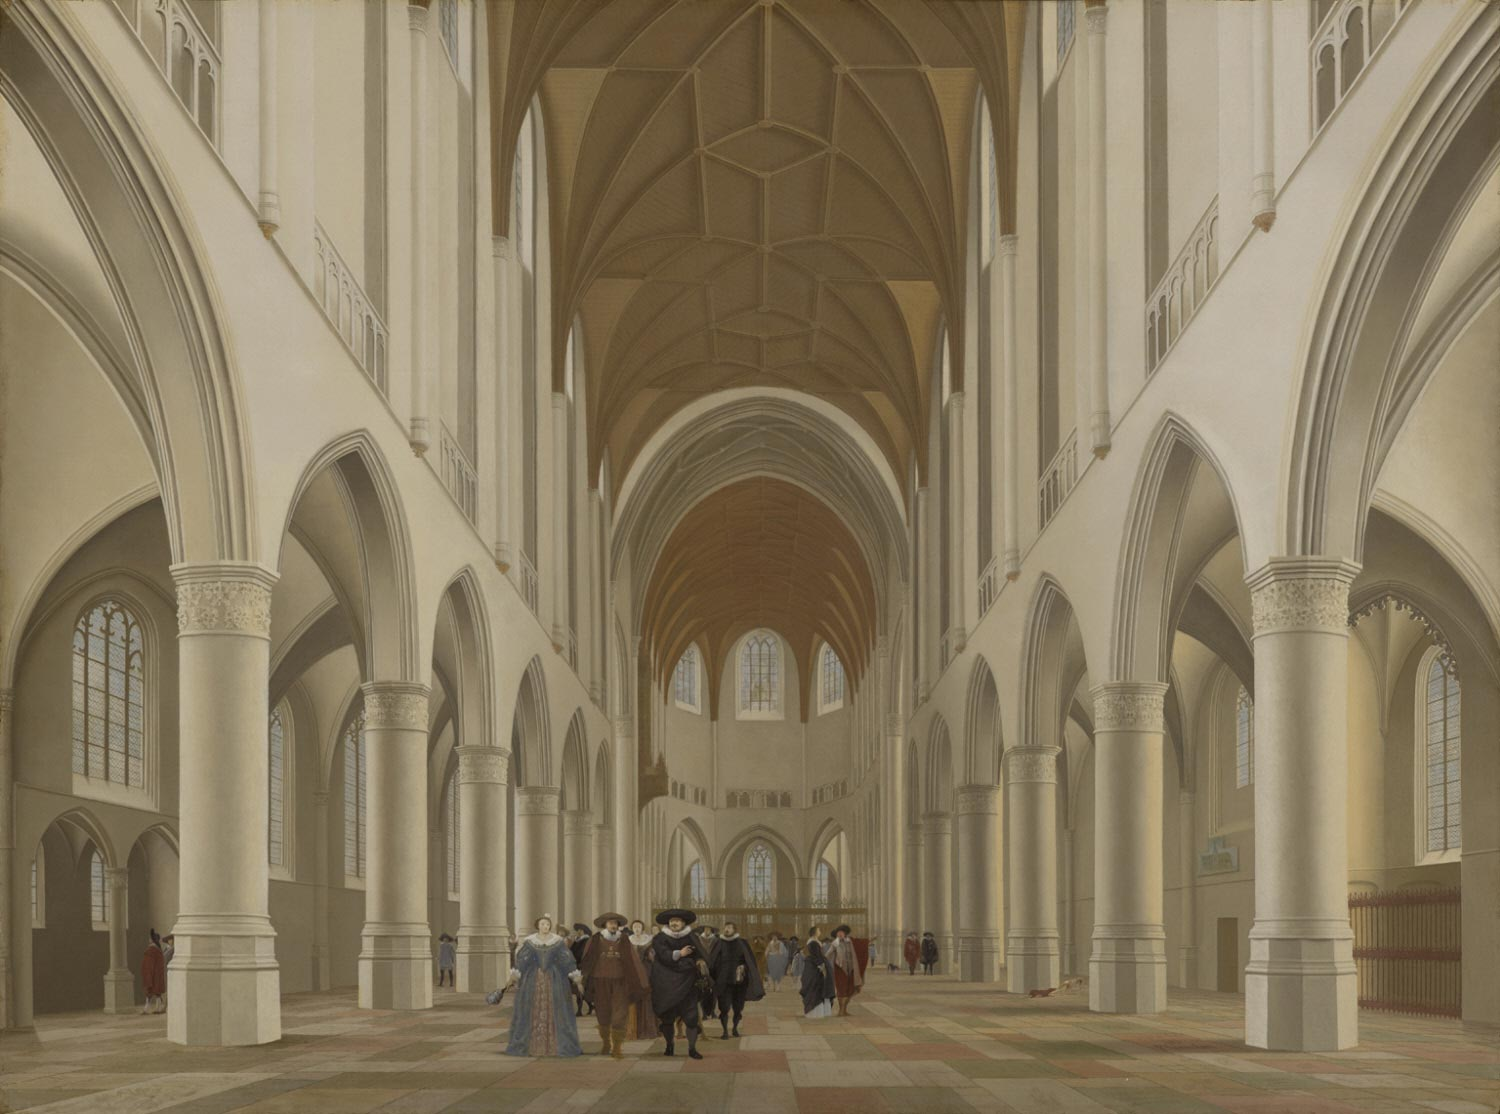 Interior of Saint Bavo, Haarlem